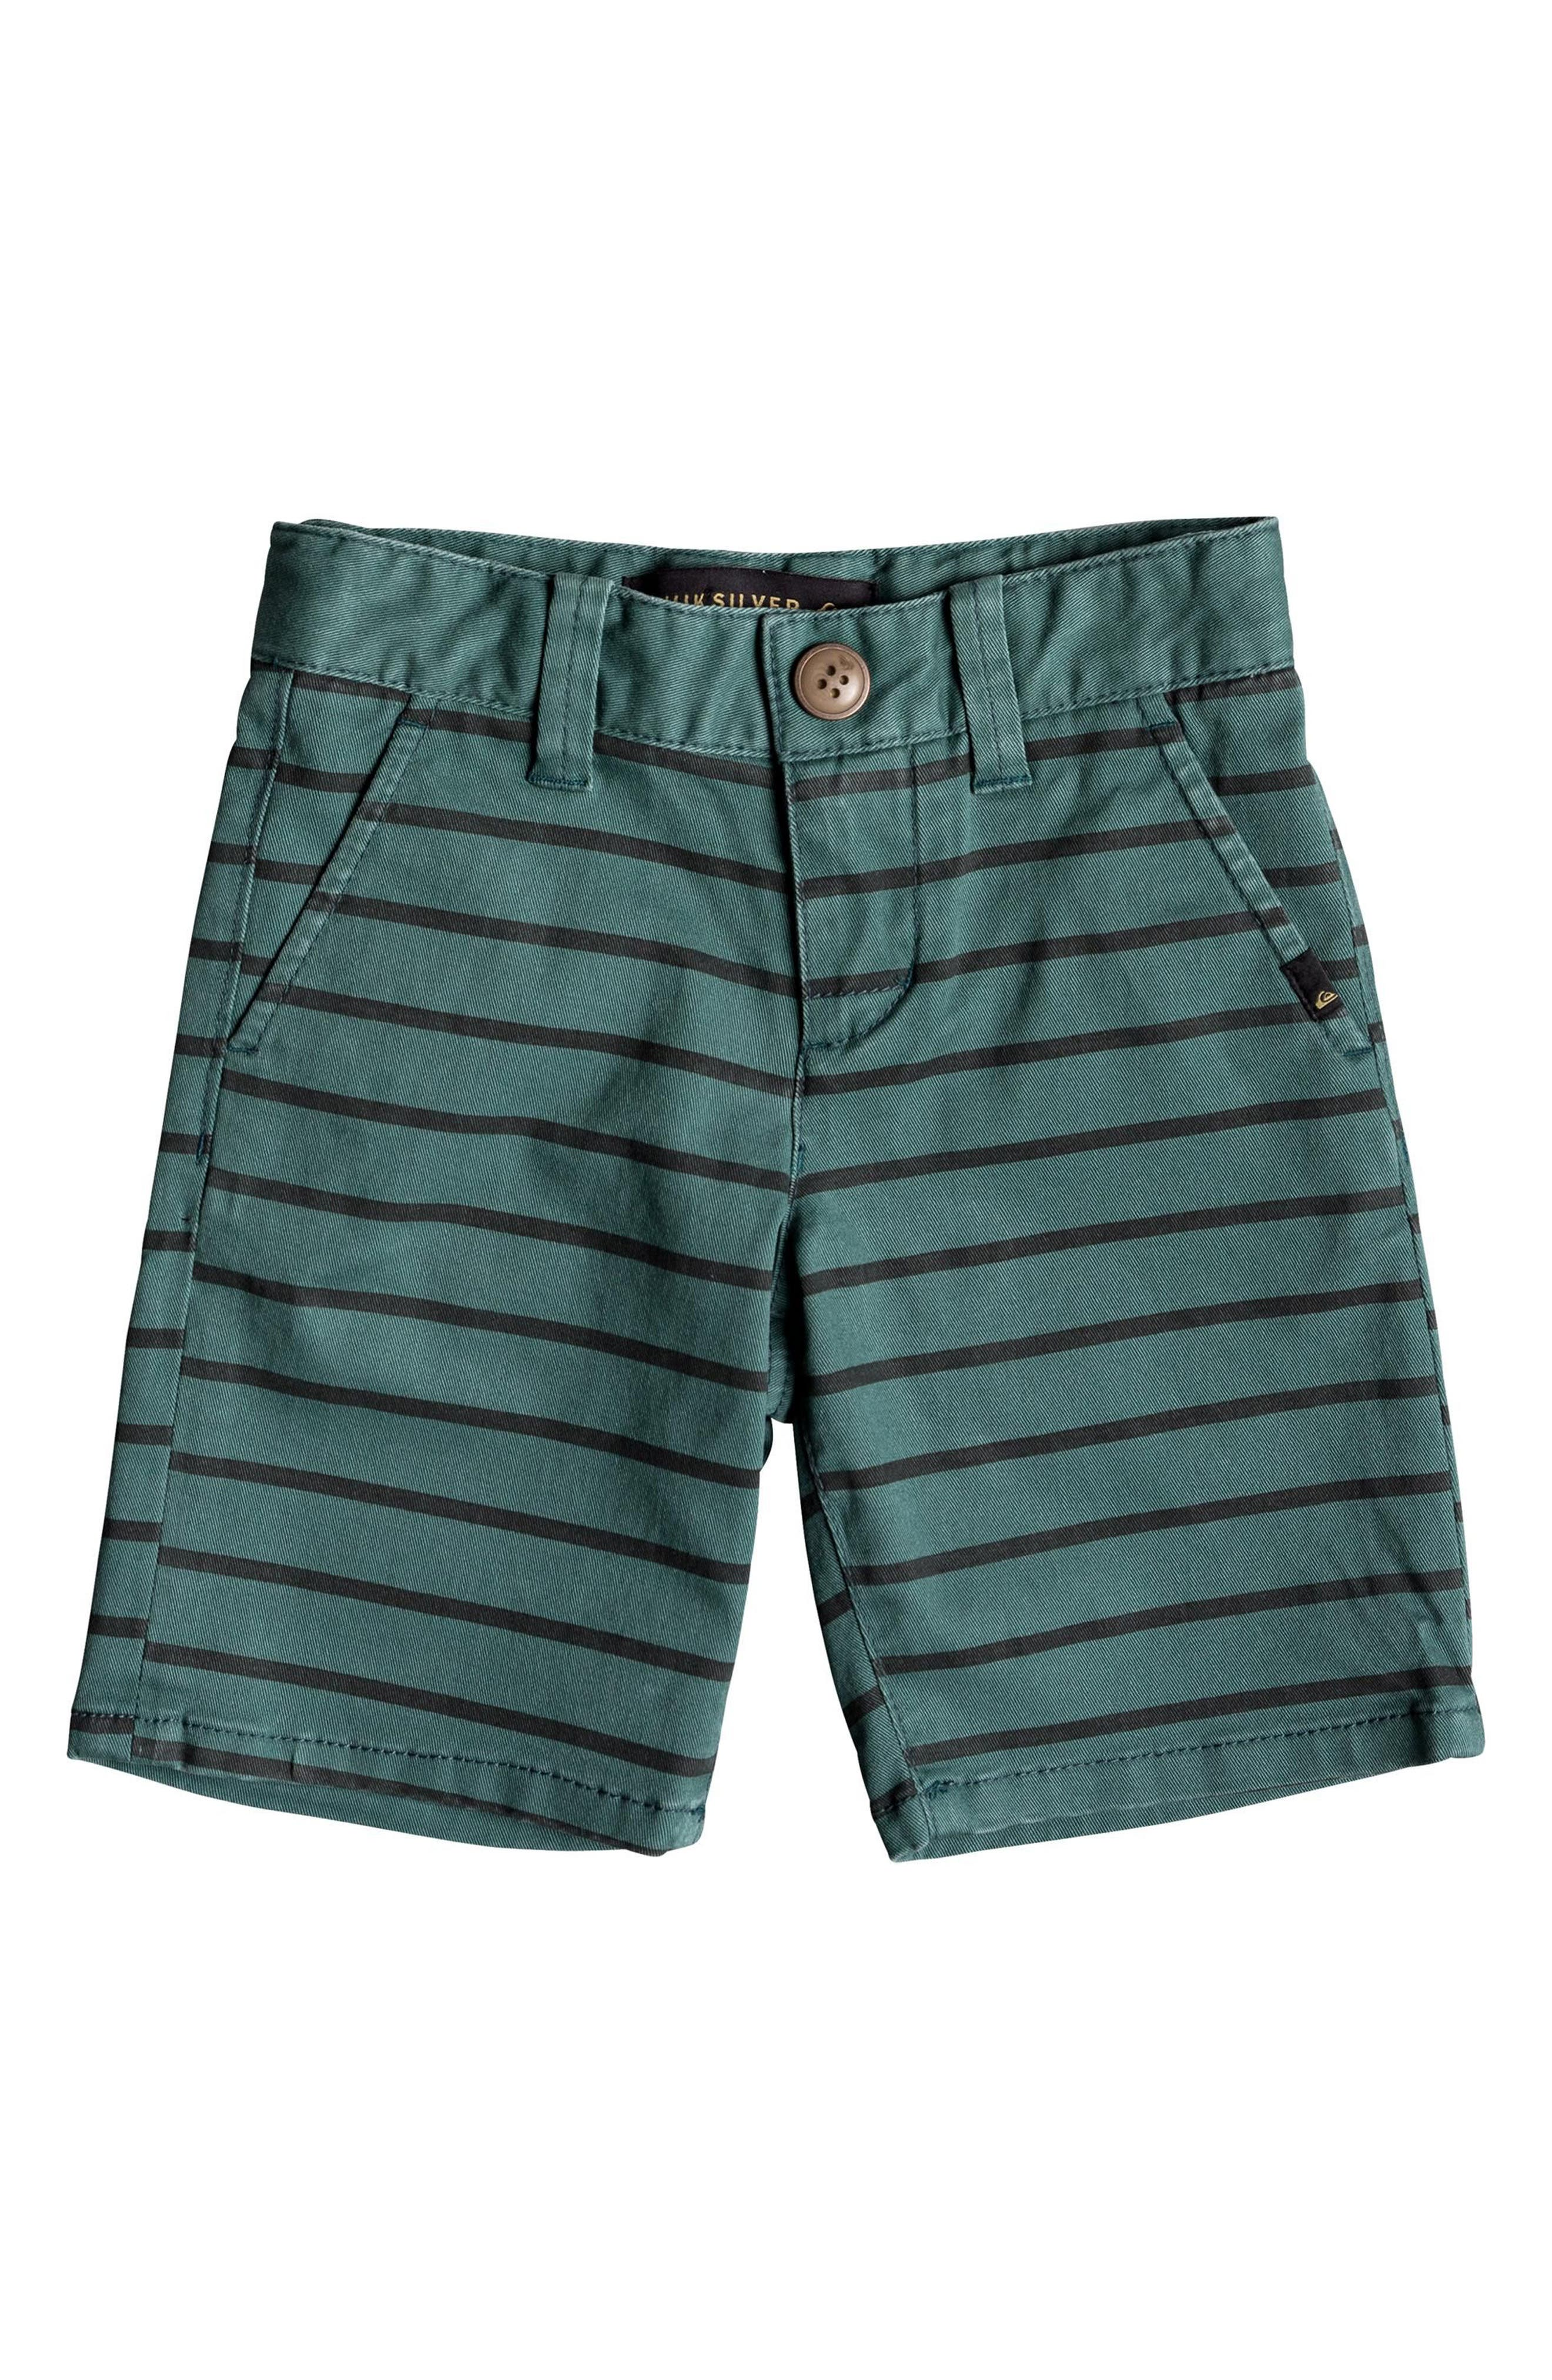 Waiku Stripe Shorts,                             Main thumbnail 1, color,                             Mallard Green